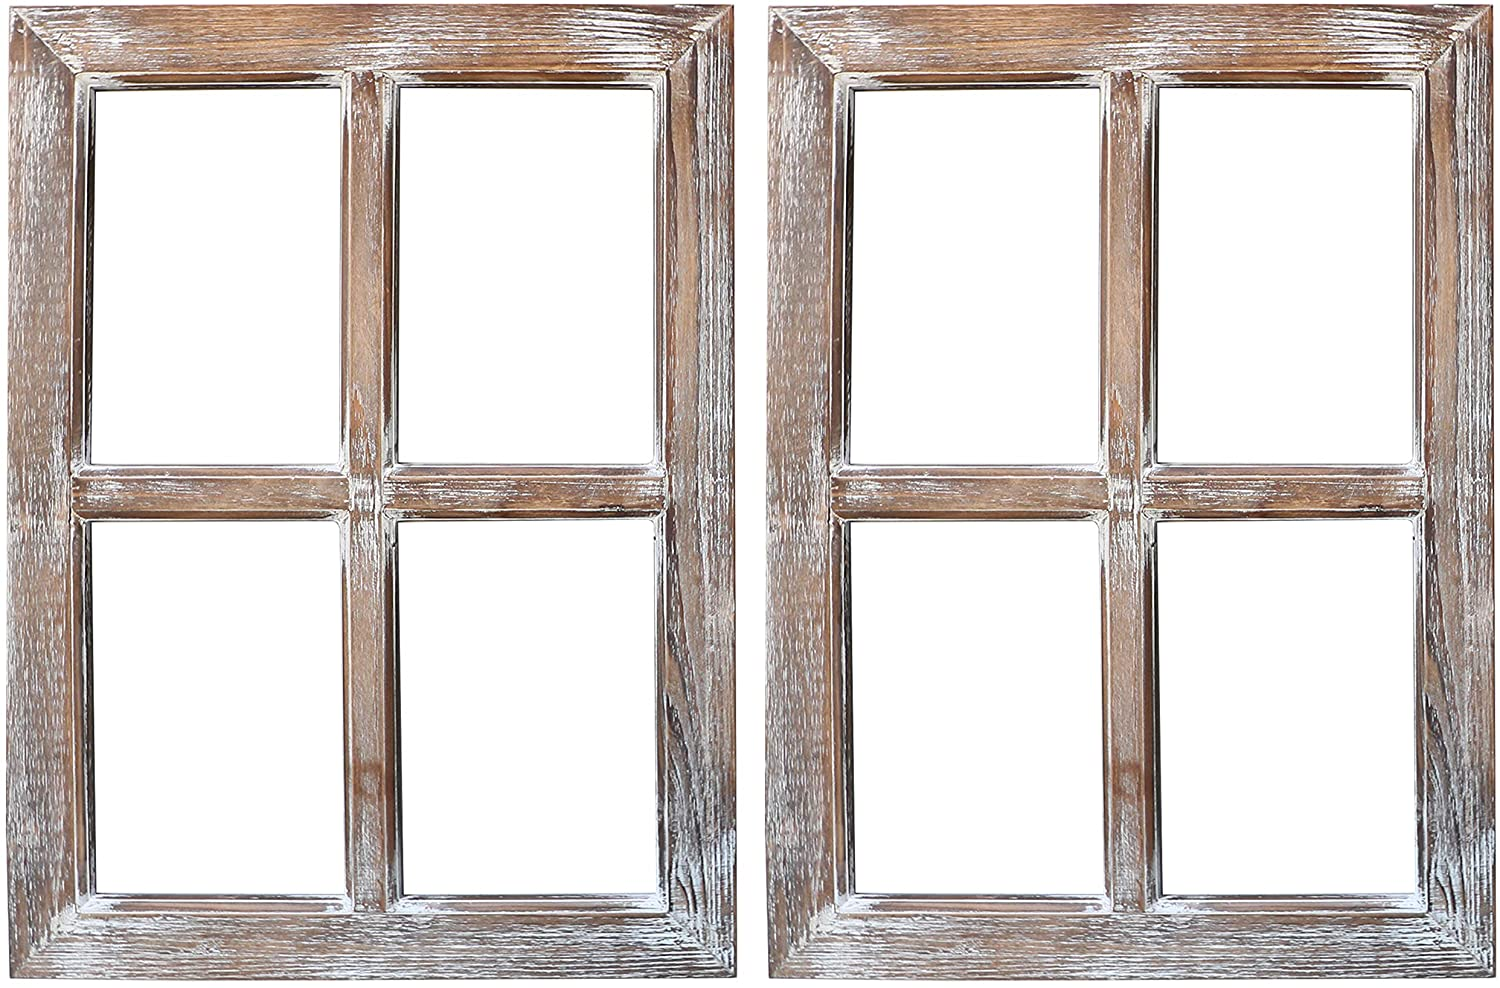 Barnyard Designs Rustic Barn Wood Window Frames, Decorative Country Farmhouse Home Wall Decor, Wooden Window Pane for Living Room, Bedroom, or Fireplace Mantel, 18